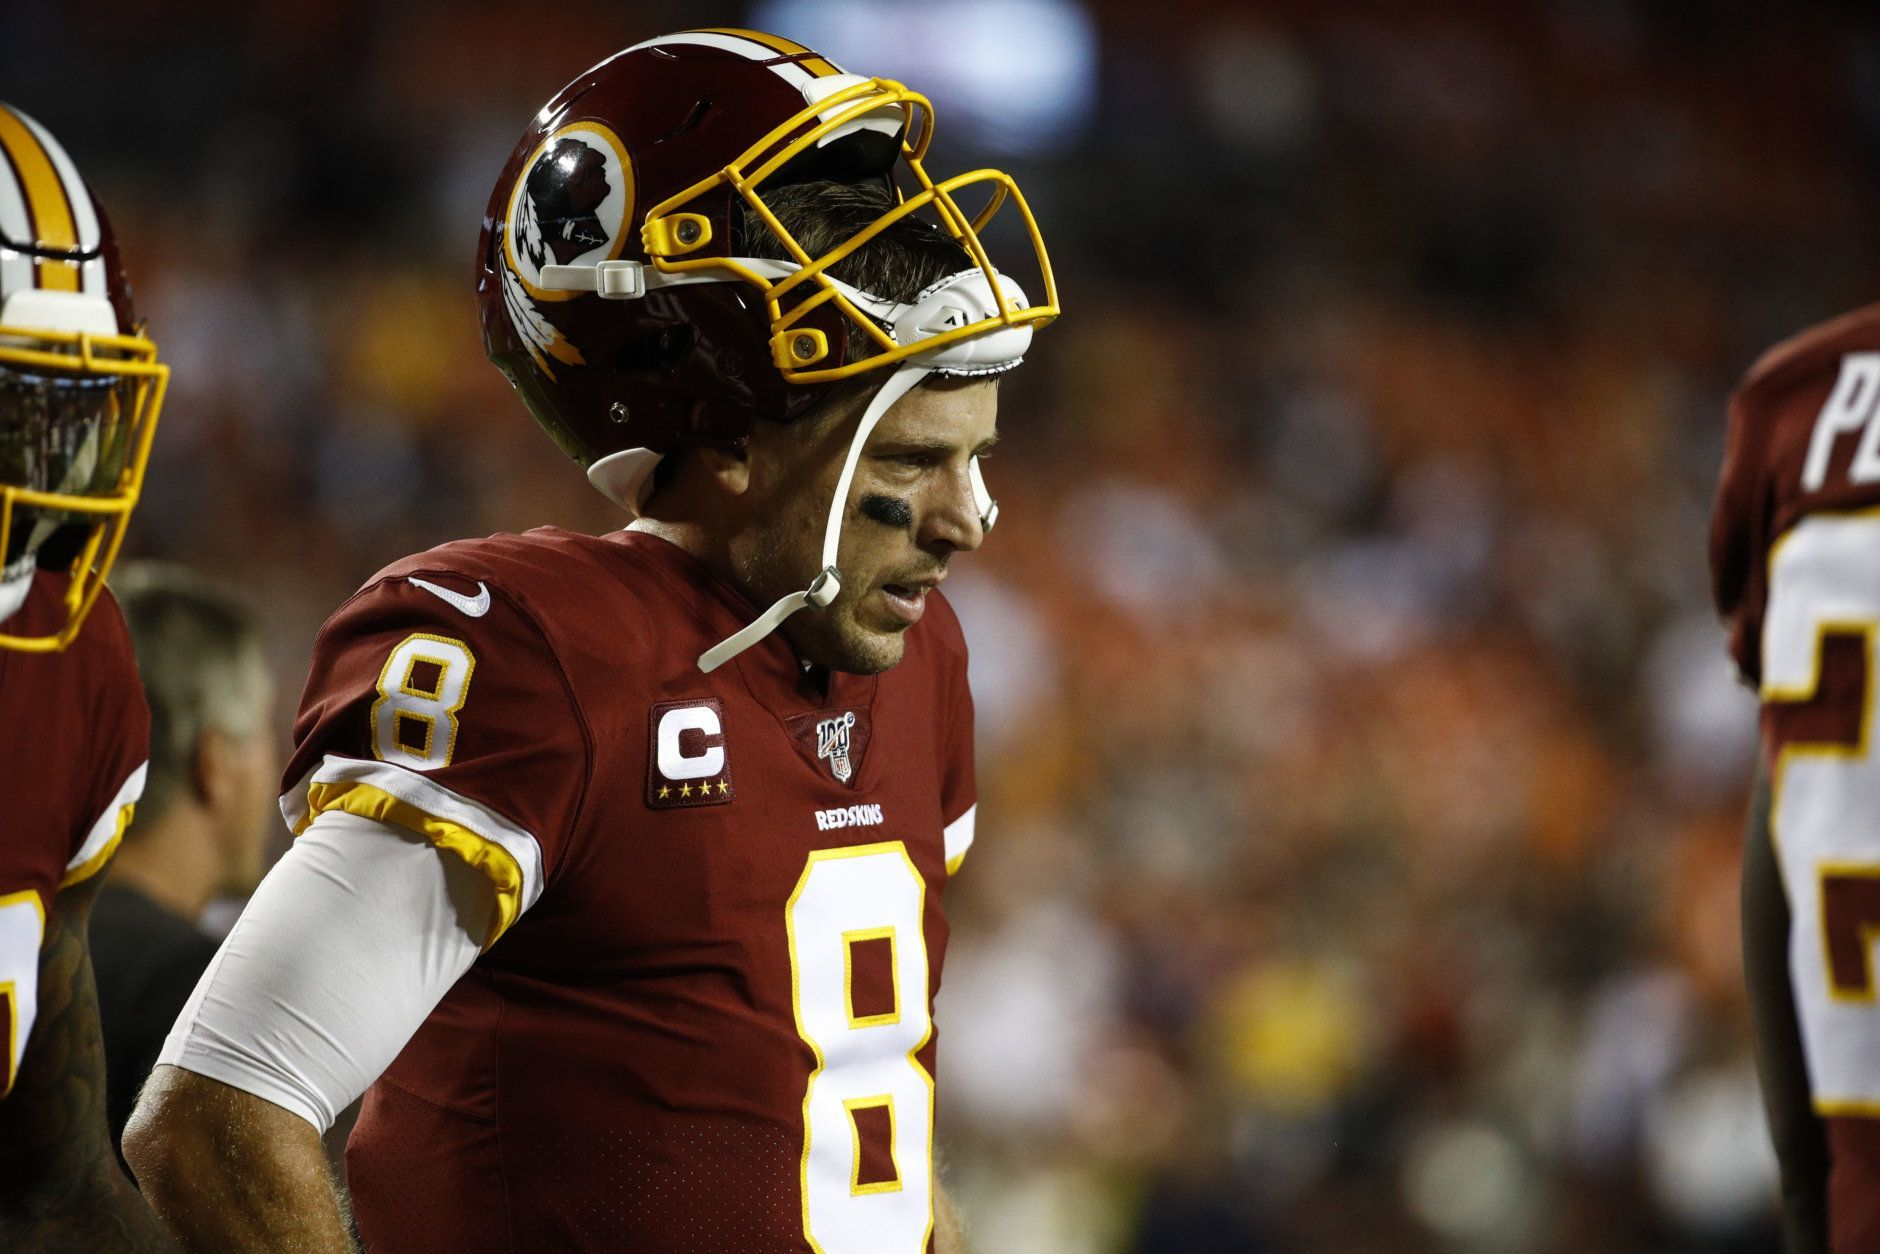 Washington Redskins quarterback Case Keenum (8) walks on the field during the first half of an NFL football game against the Chicago Bears, Monday, Sept. 23, 2019, in Landover, Md. (AP Photo/Patrick Semansky)